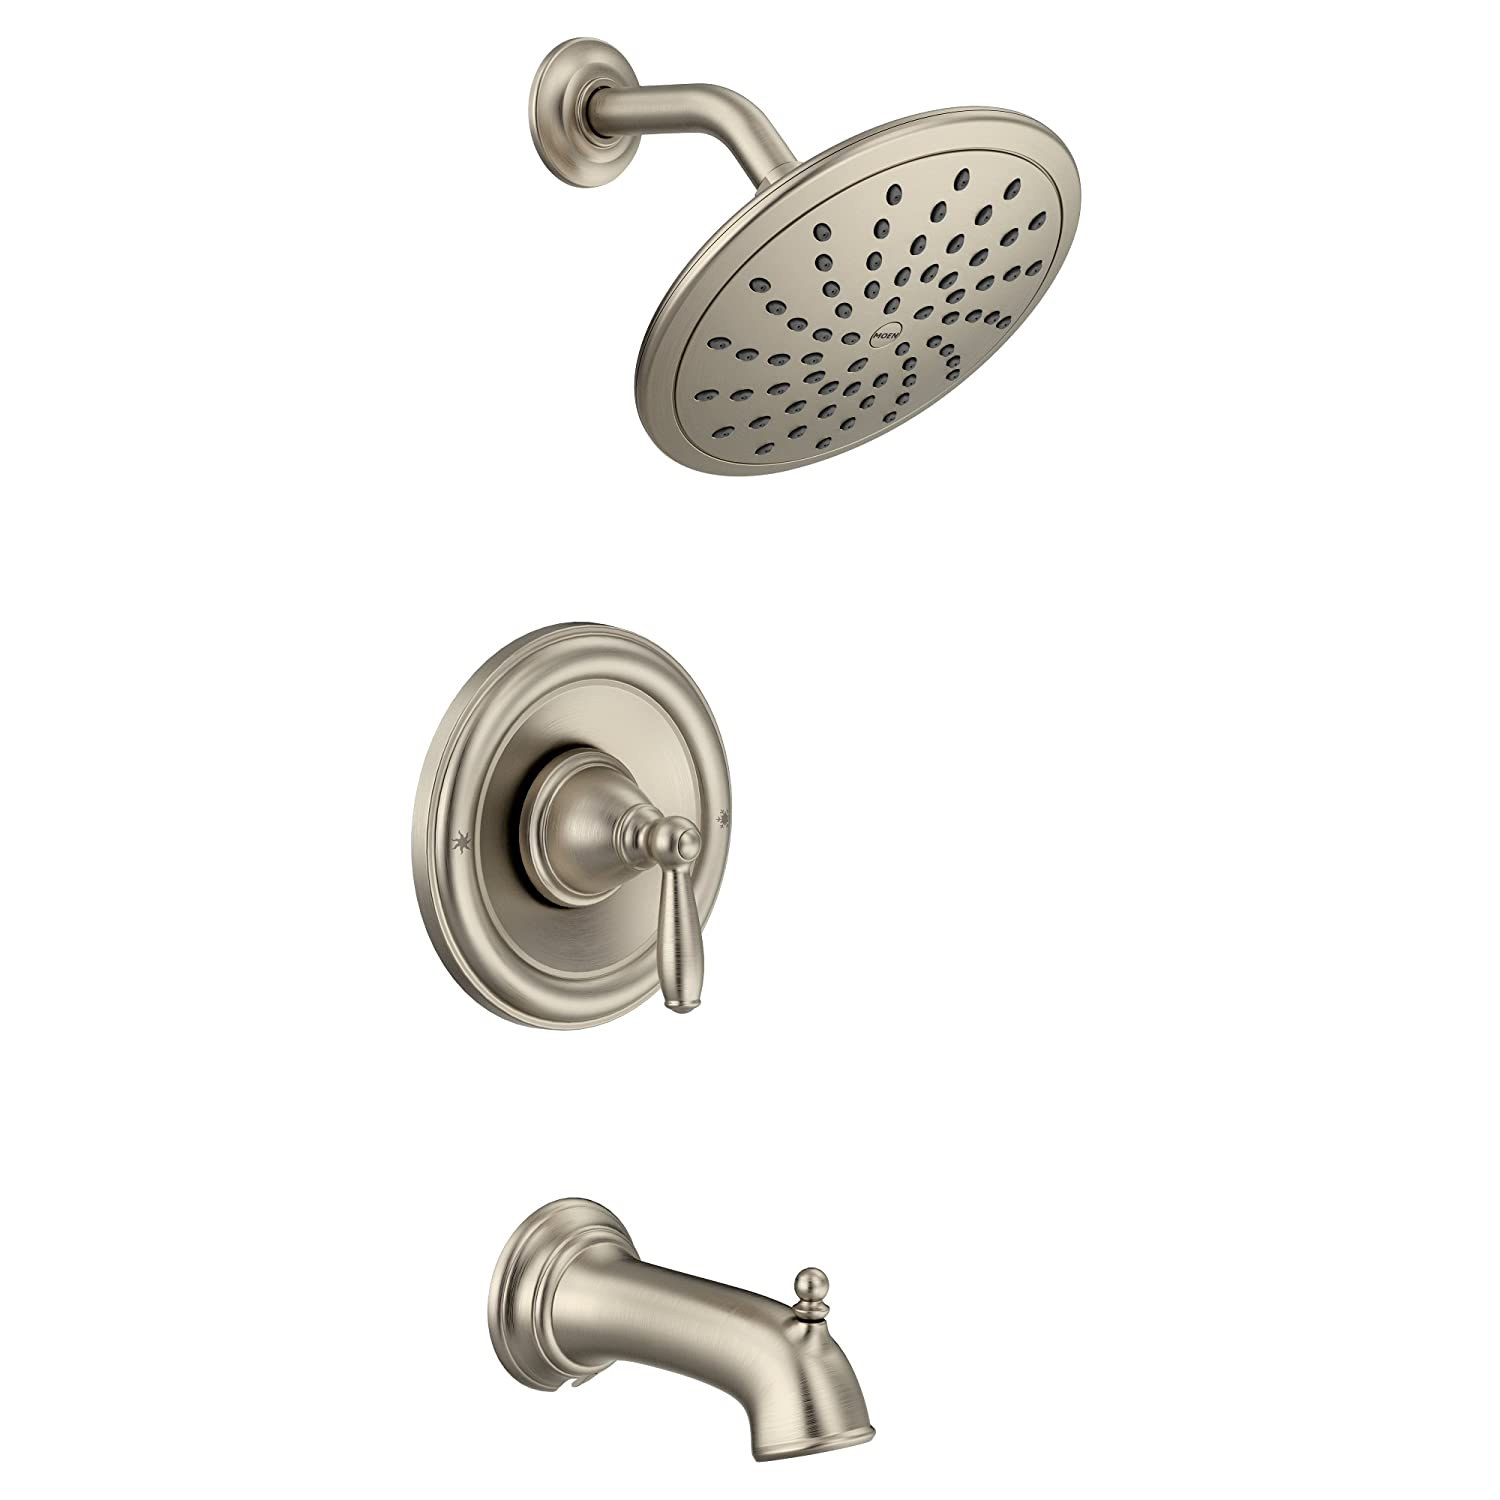 Moen T2253EPBN Brantford Tub Shower Faucet System with Rainshower Showerhead Without Valve Brushed Nickel